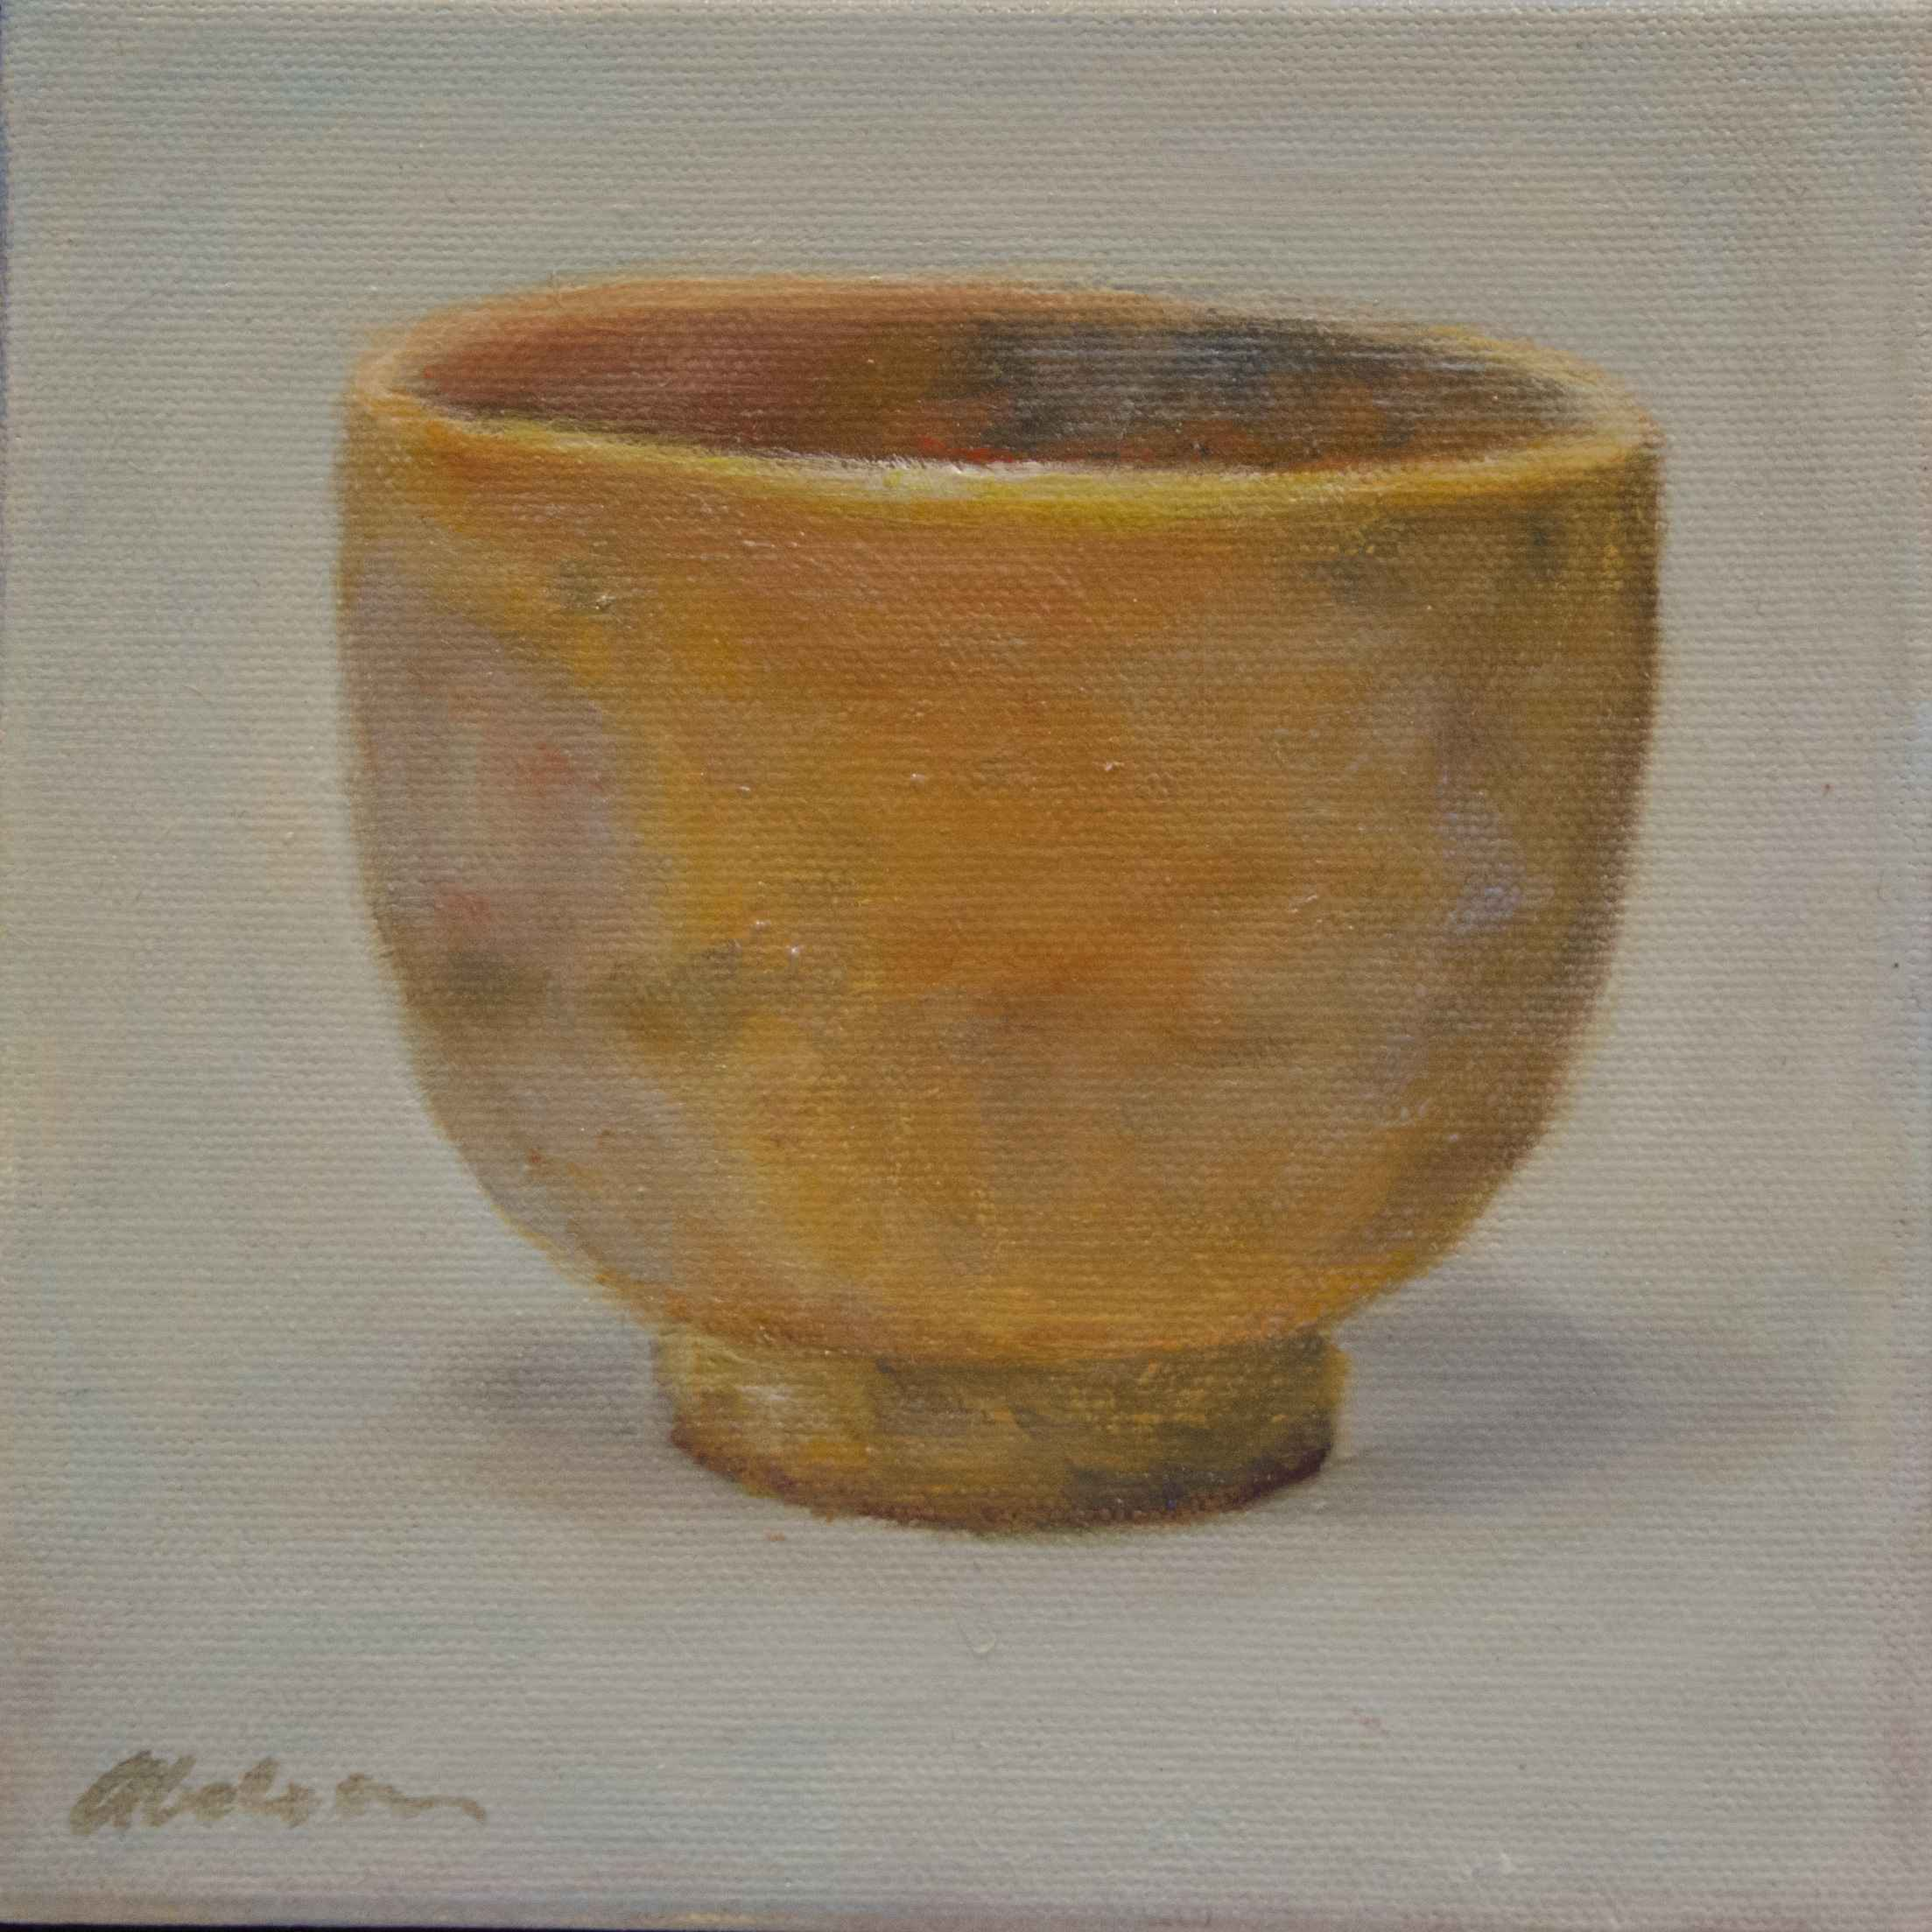 Japanese Teacup I by Myra Abelson - Beacon Gallery